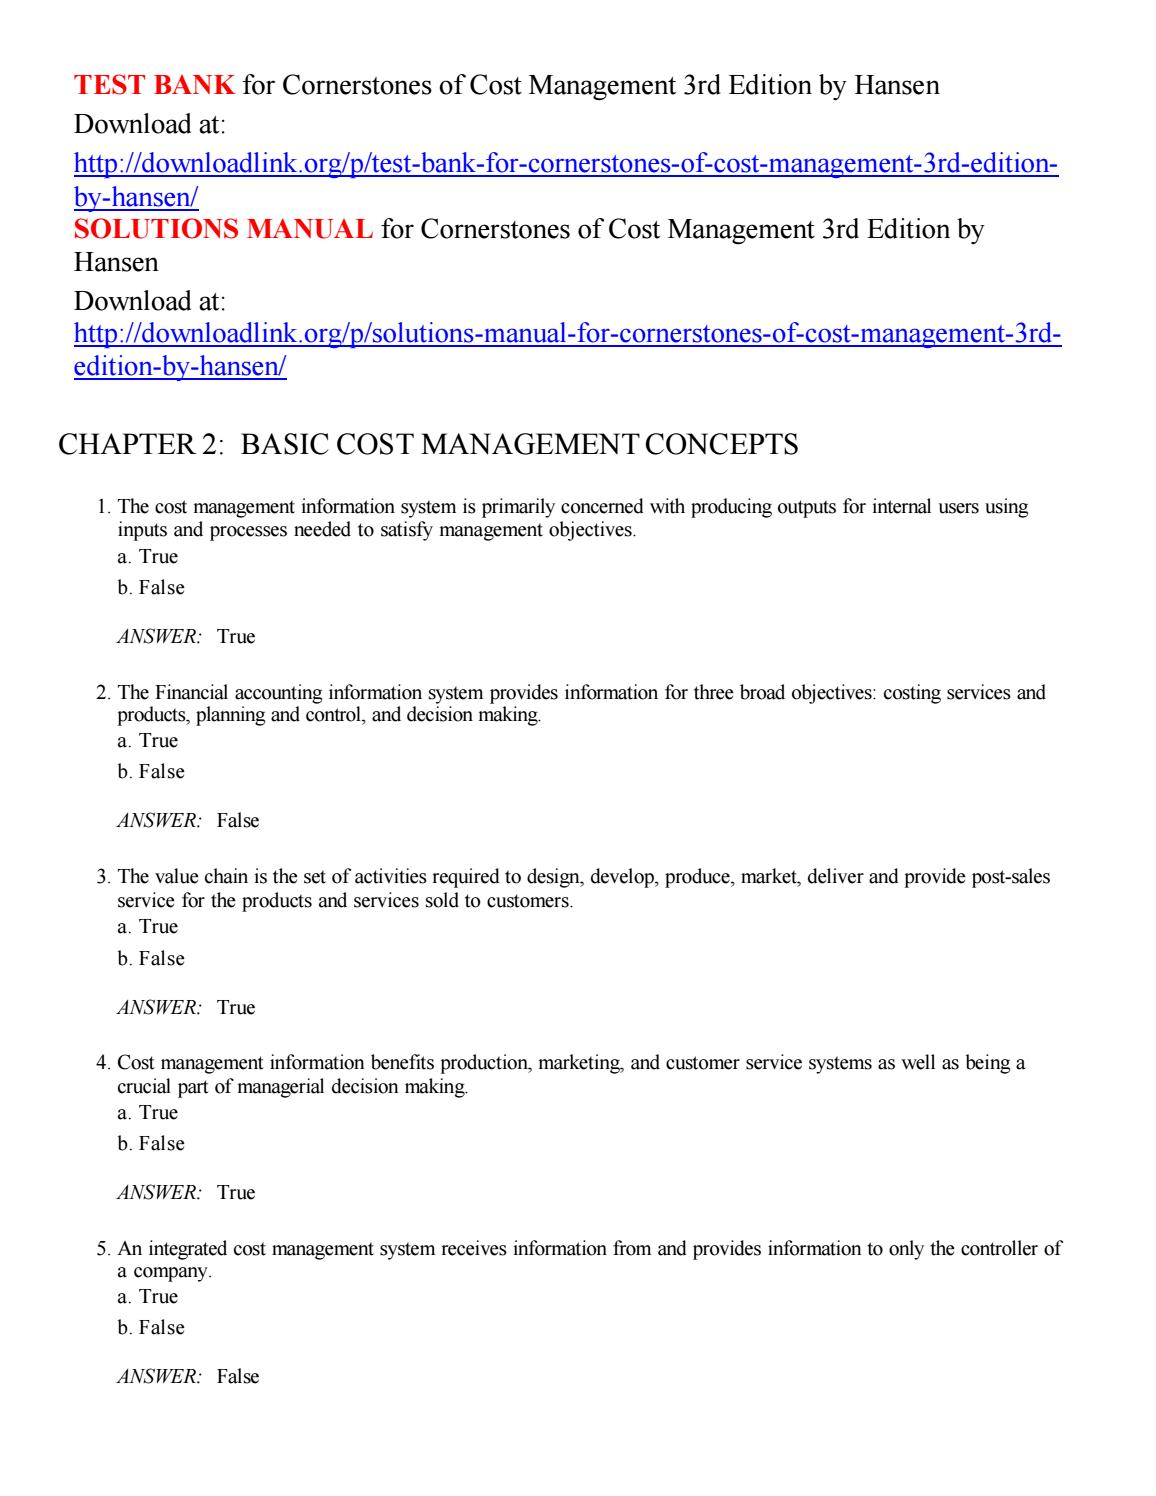 Test bank for cornerstones of cost management 3rd edition by hansen by  Kloppenborg - issuu